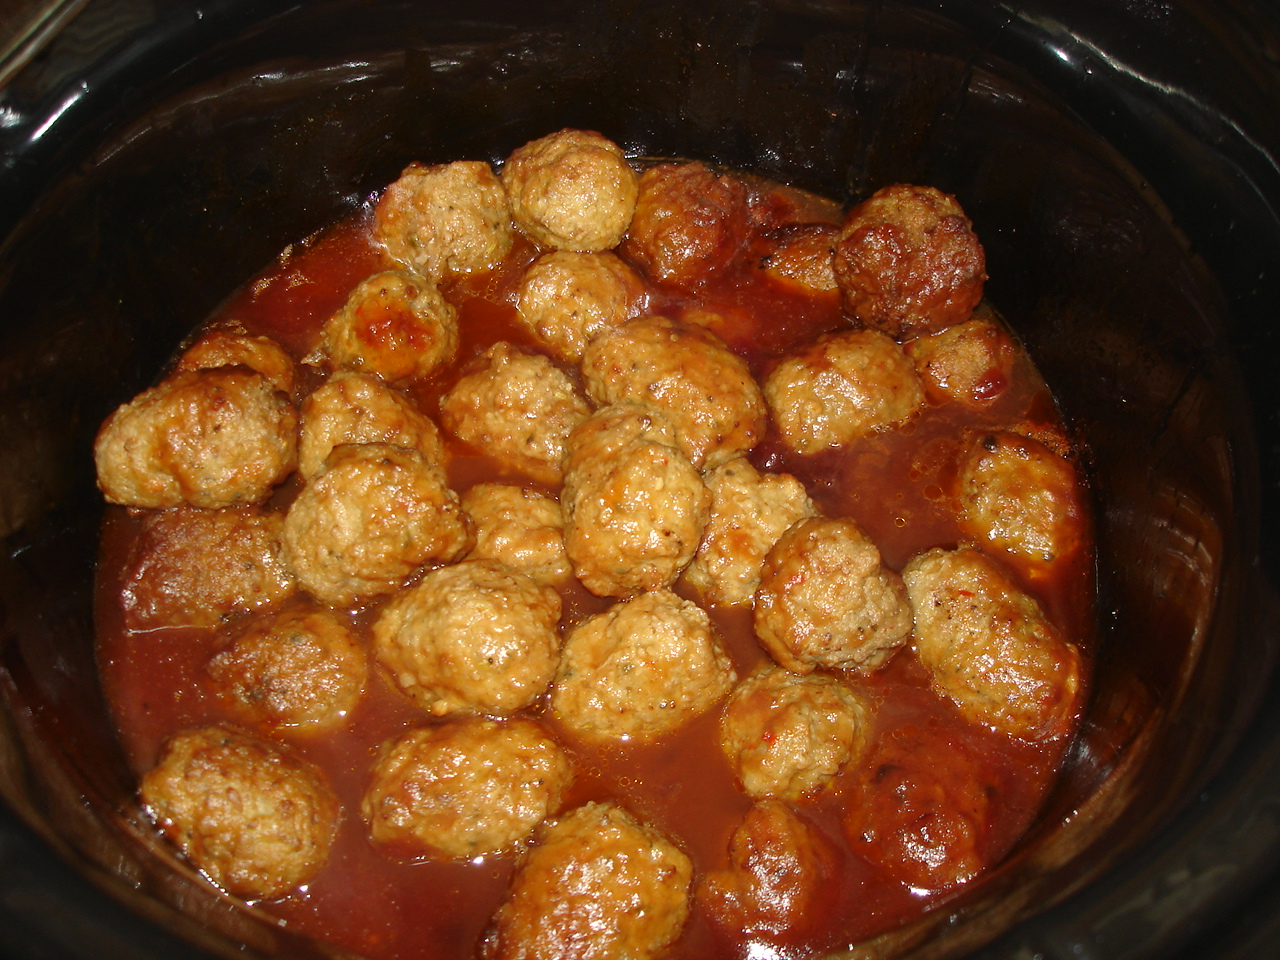 What's cookin', Mom?: Slow cooker barbecue meatballs